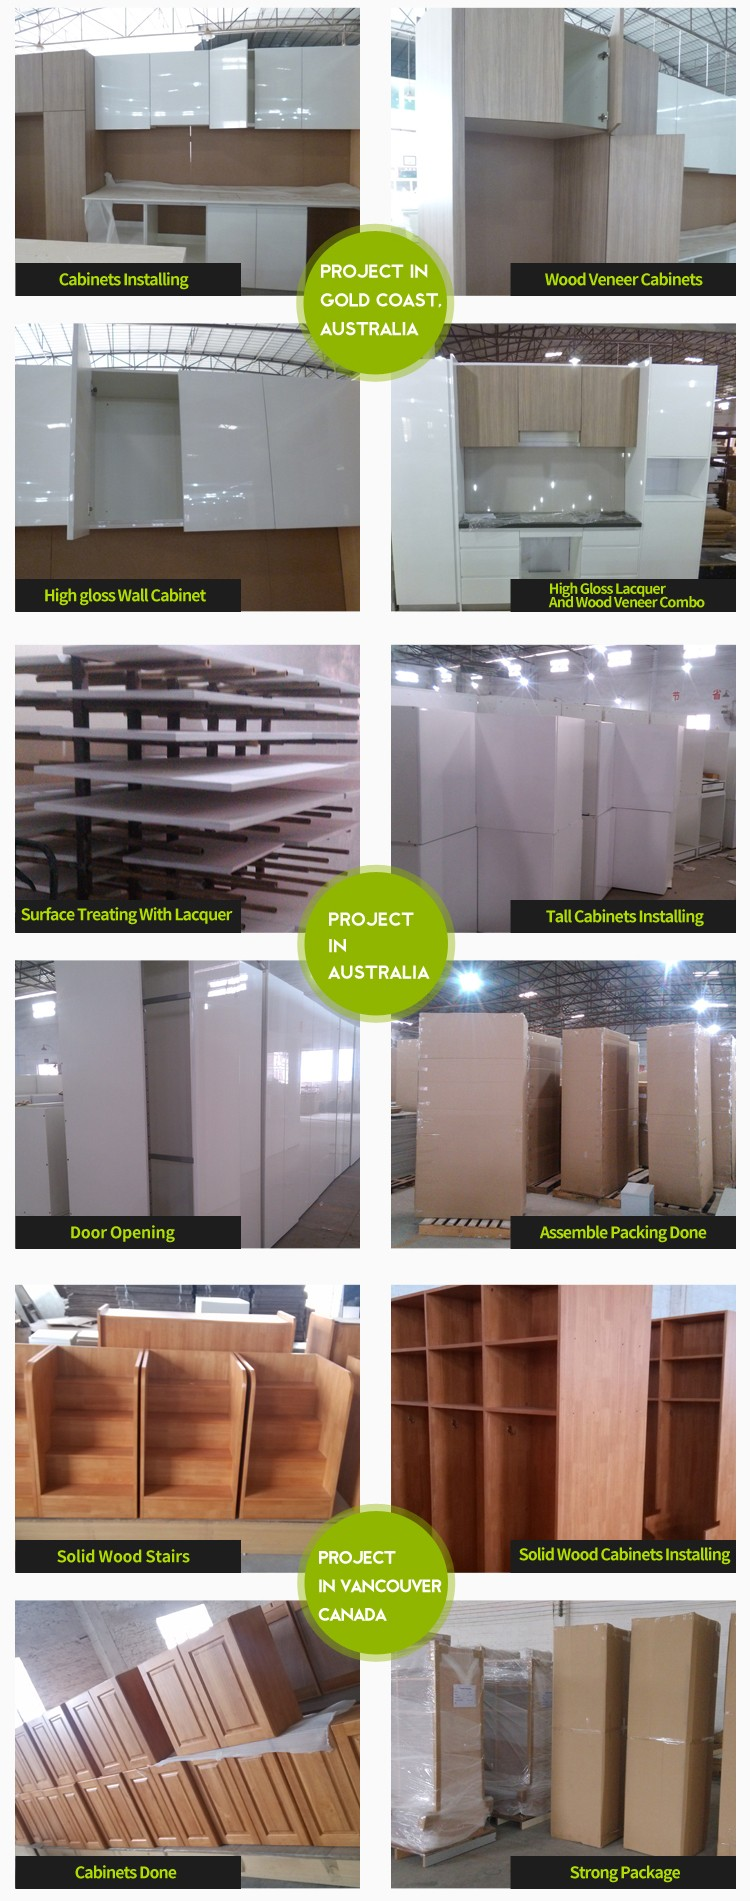 Hot-selling showroom project fiber kitchen cabinet